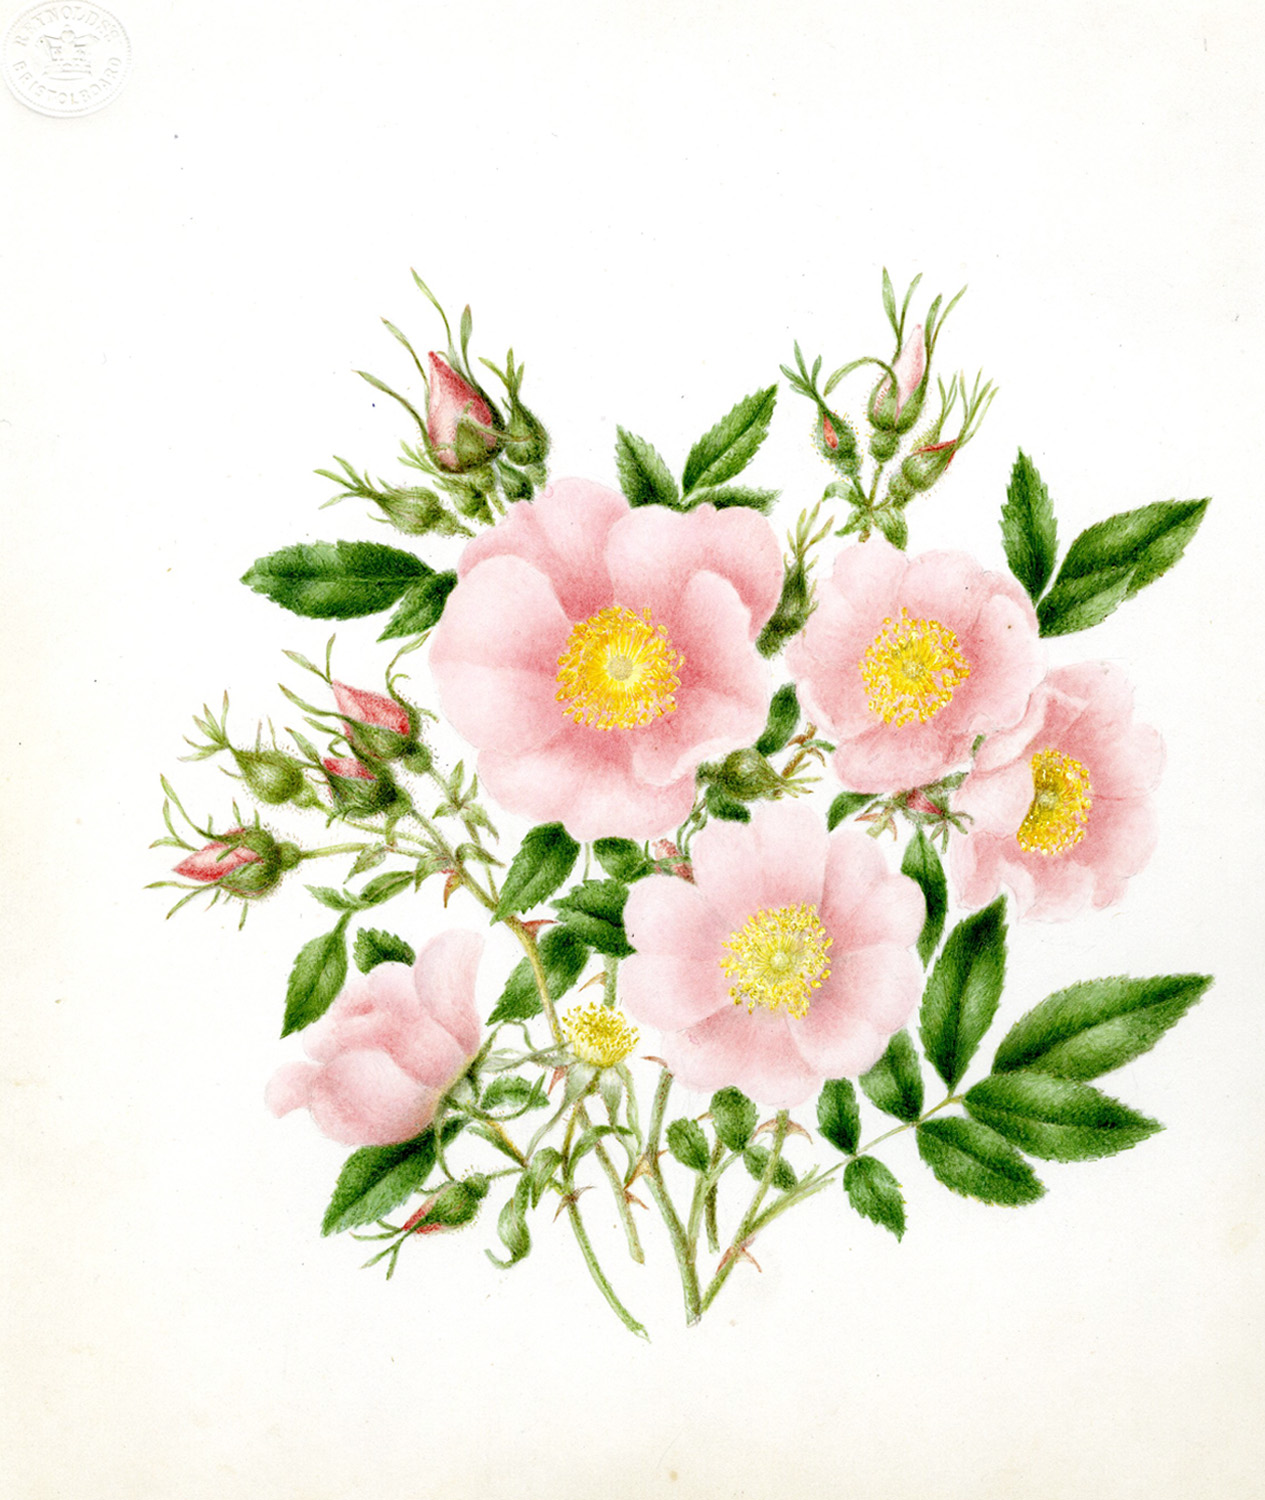 Drawn rose bush wild rose Archives Murdoch Gray Gray Harvard